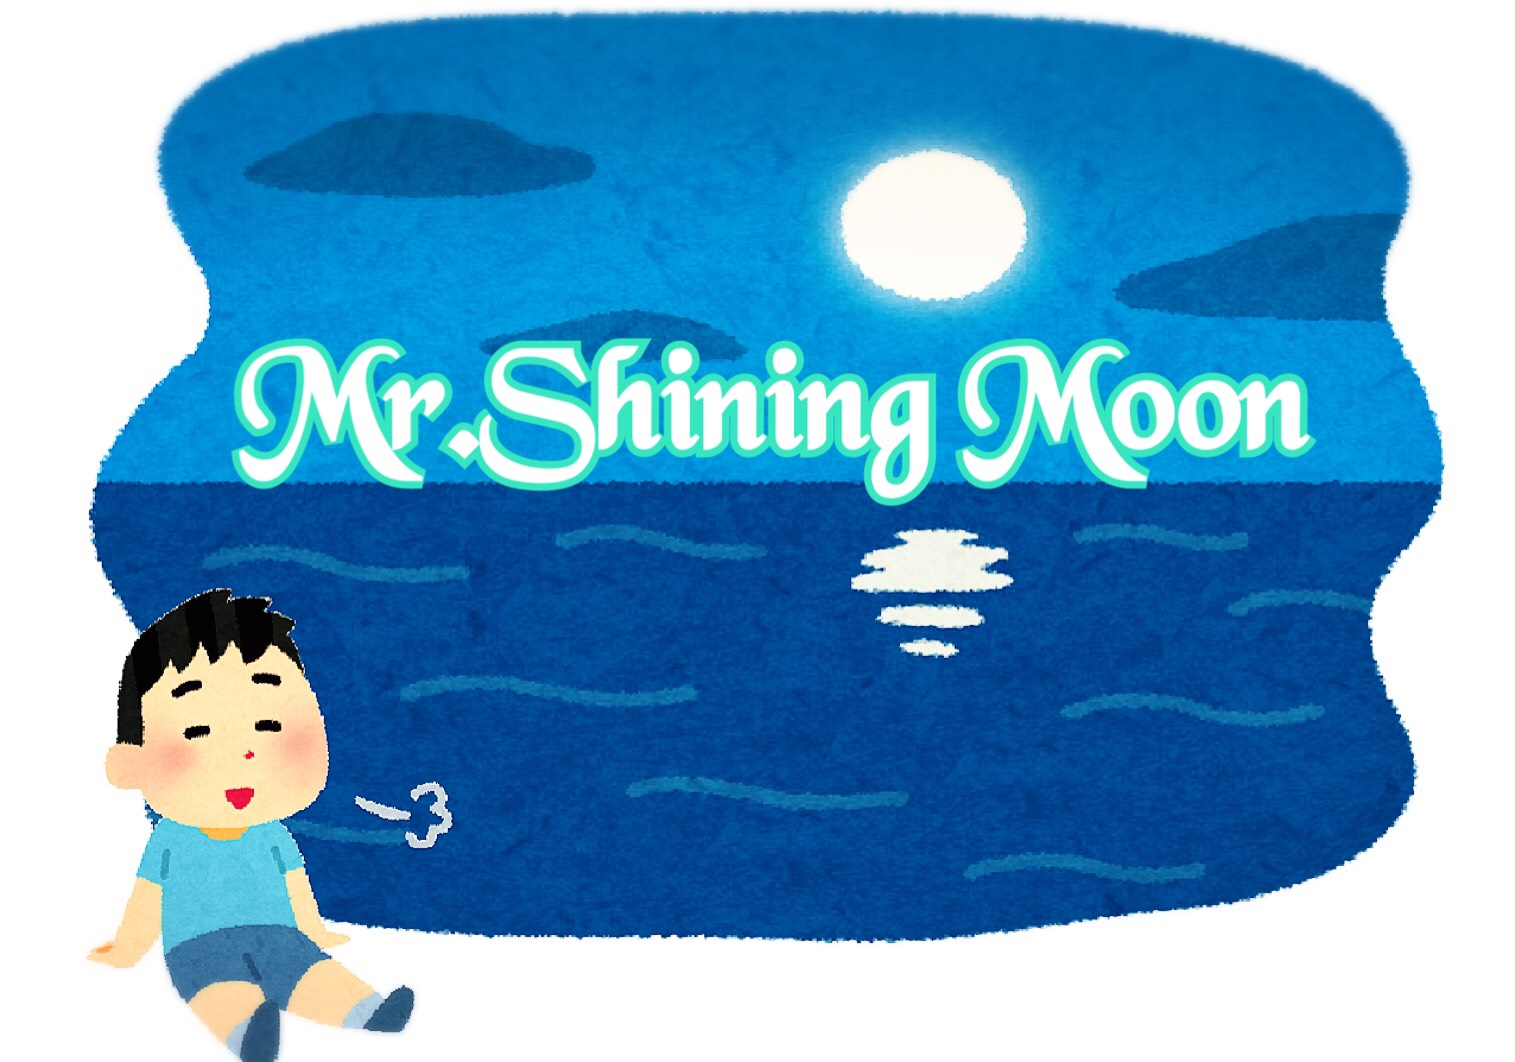 「Mr.Shining Moon」のイメージ